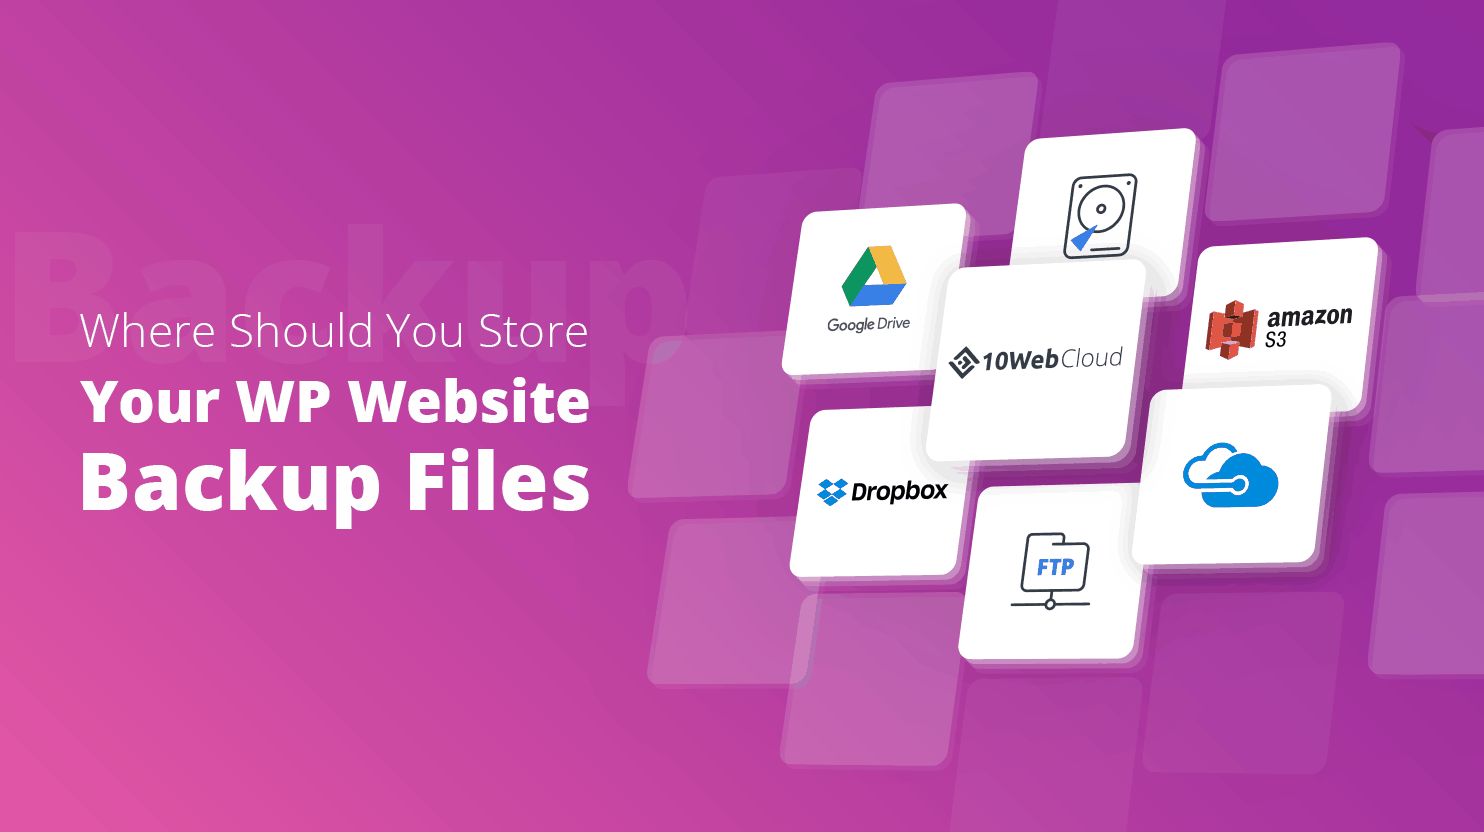 Where Should You Store Your WP Website Backup Files?